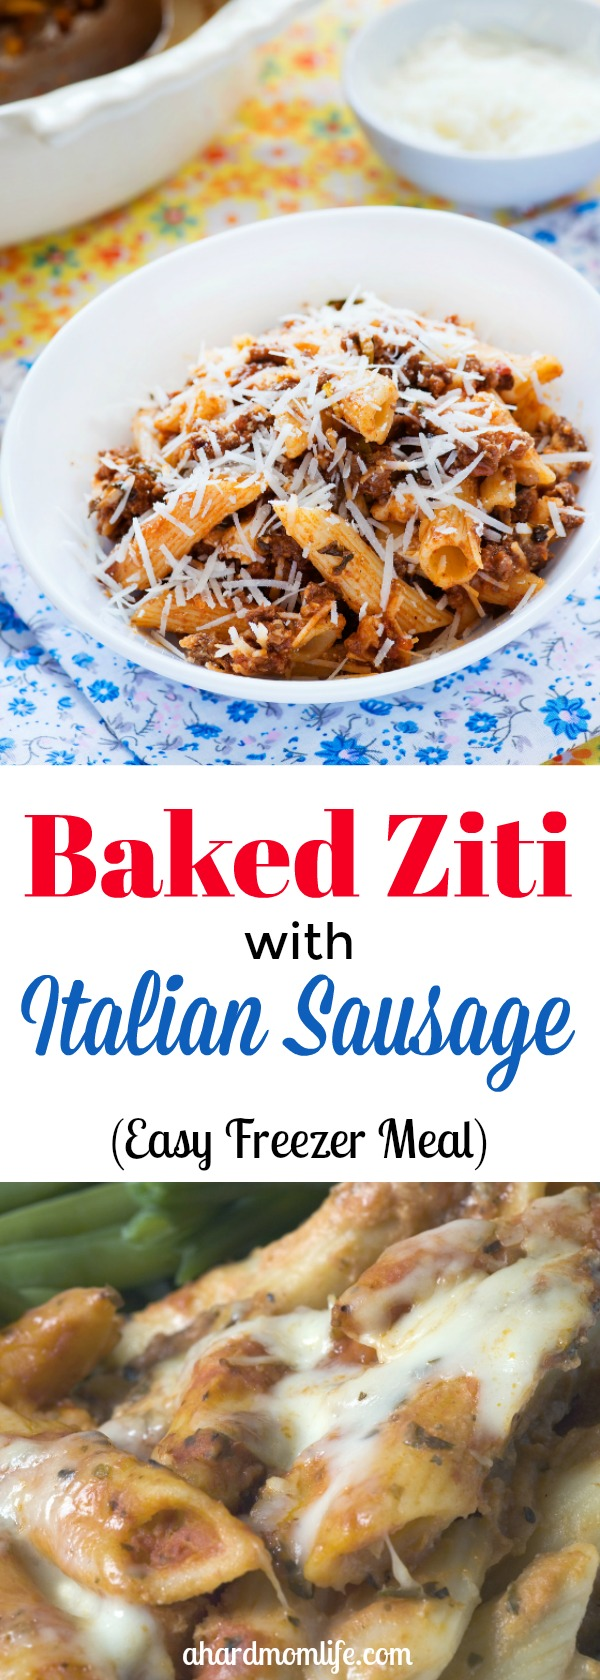 Looking for an easy freezer meal to prep and save time? Or, are you just looking for an easy weeknight meal that your kids will actually eat? Give this baked ziti with Italian sausage a try. You won't be disappointed. #freezer meal #easy recipe #easy weeknight dinner